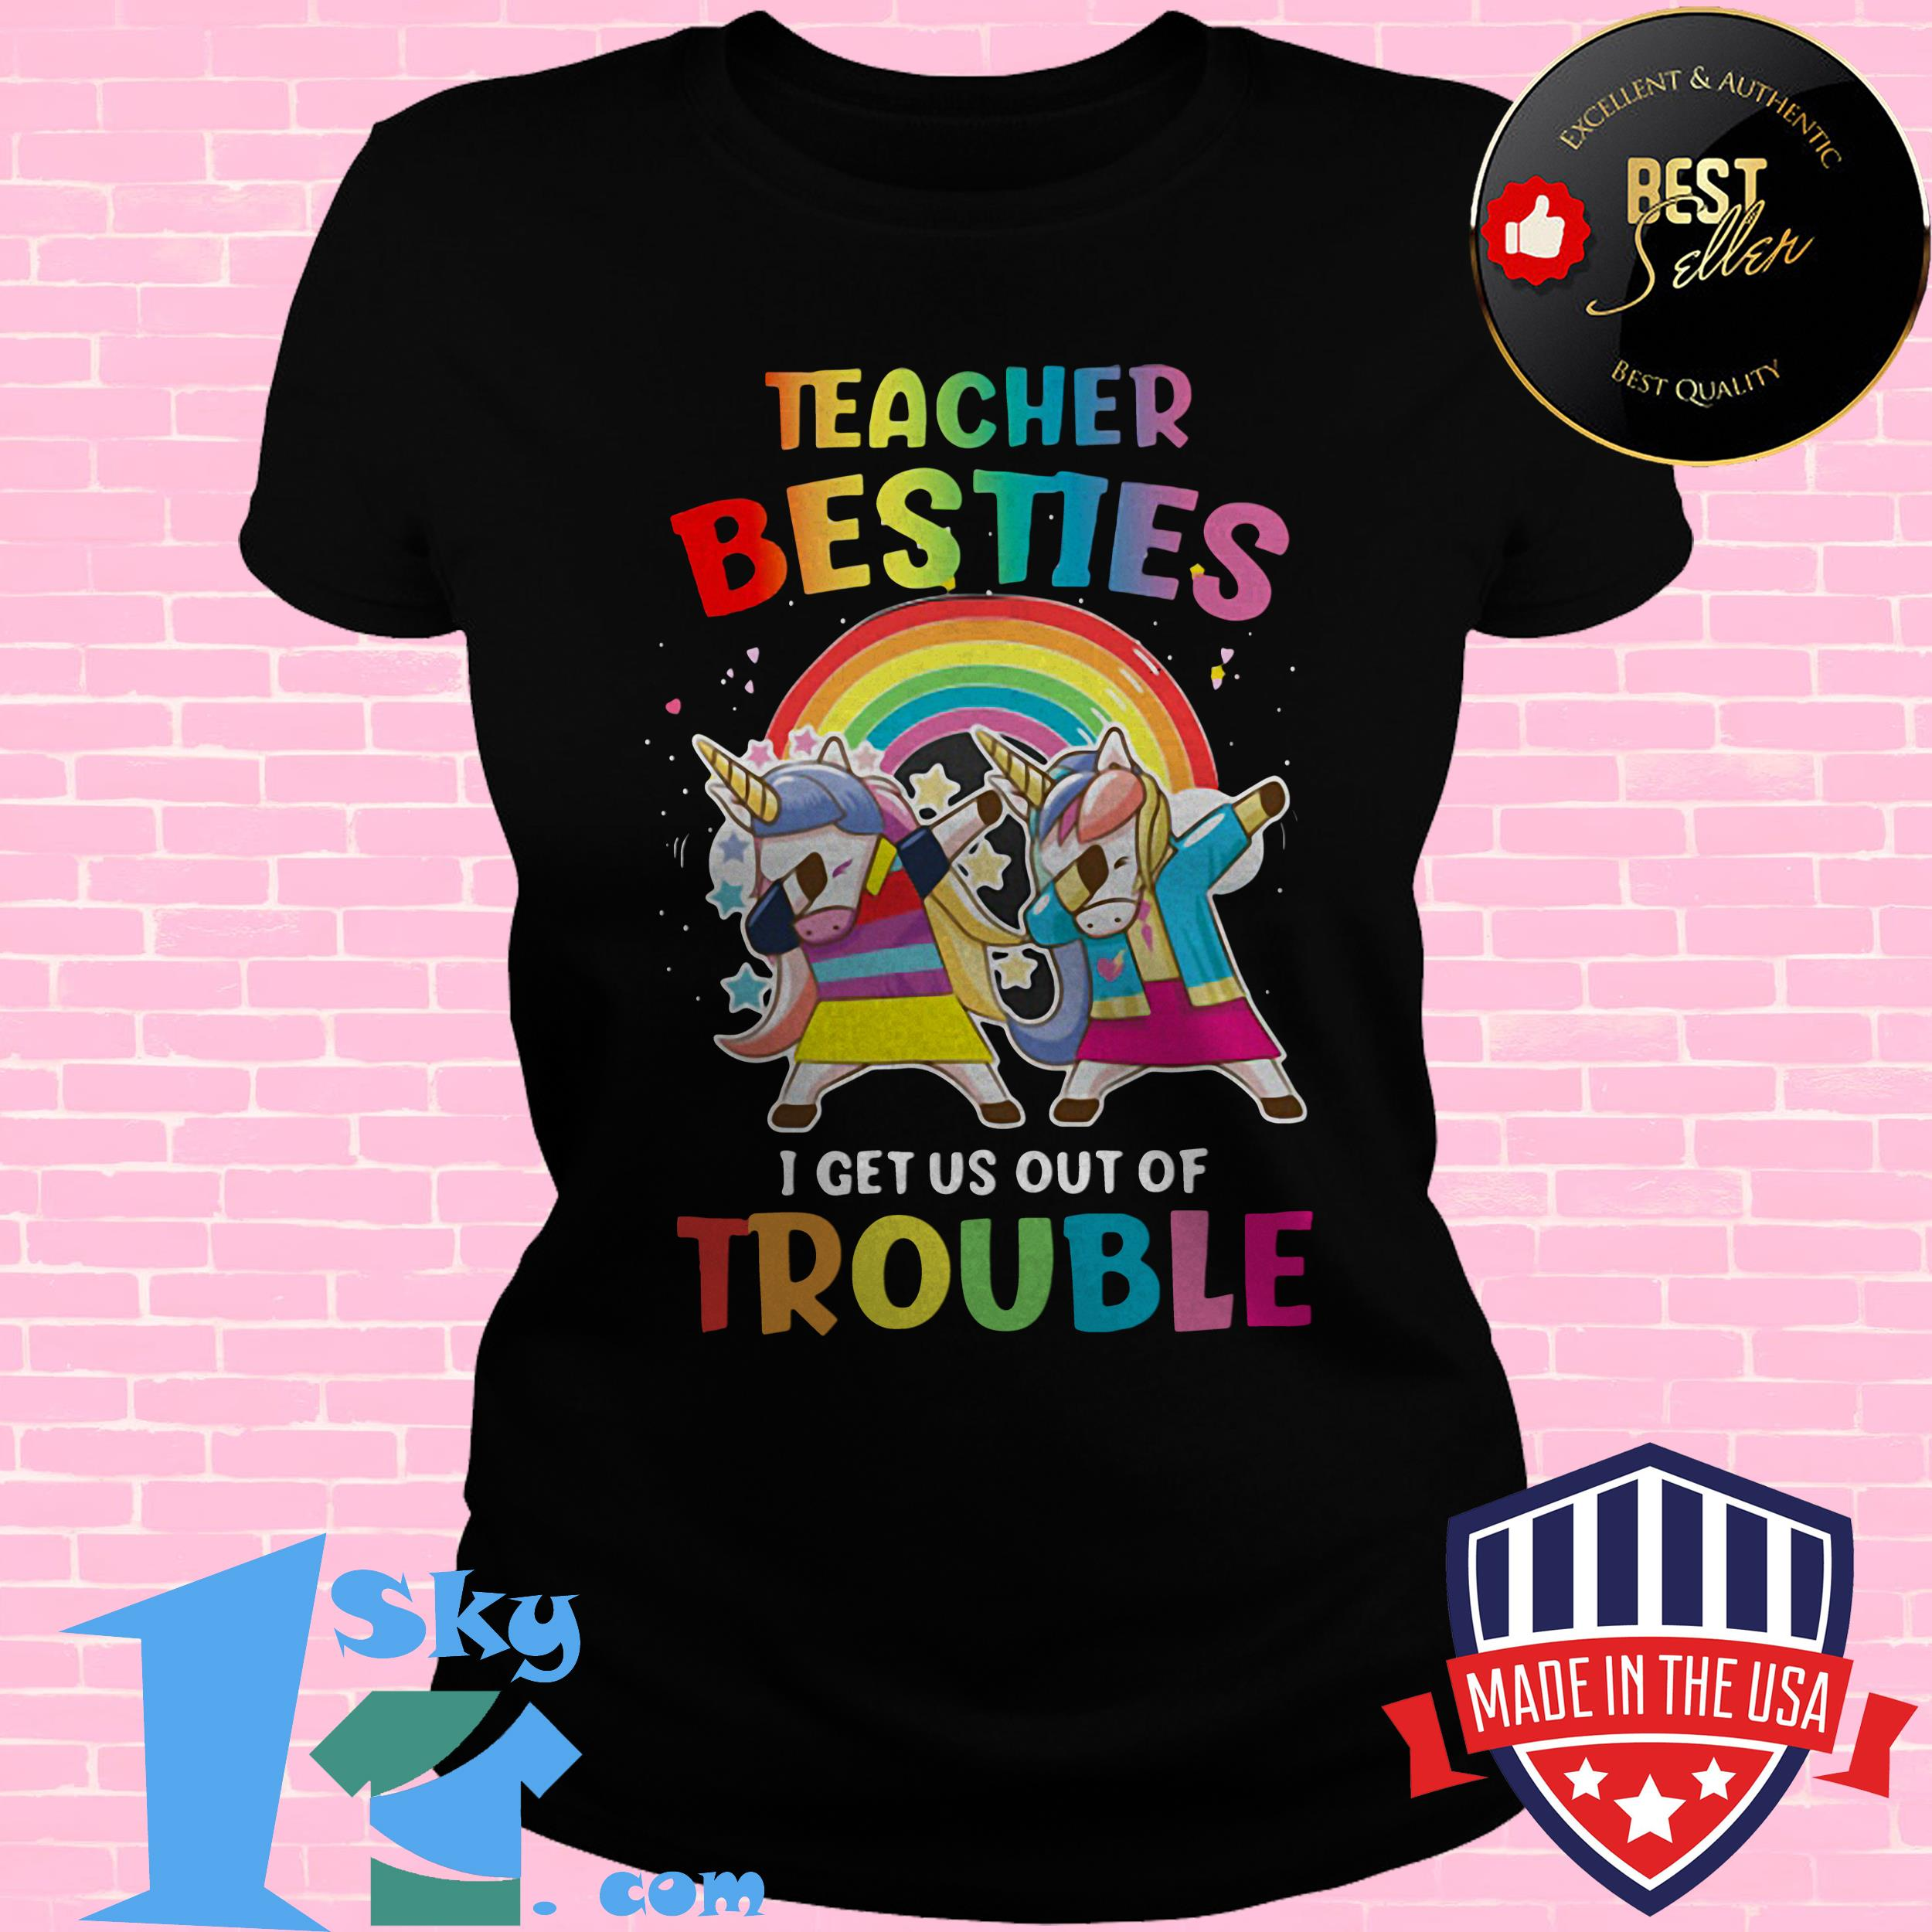 lgbt teacher besties i get us out of trouble unicorn ladies tee - LGBT Teacher Besties I Get Us Out Of Trouble Unicorn shirt